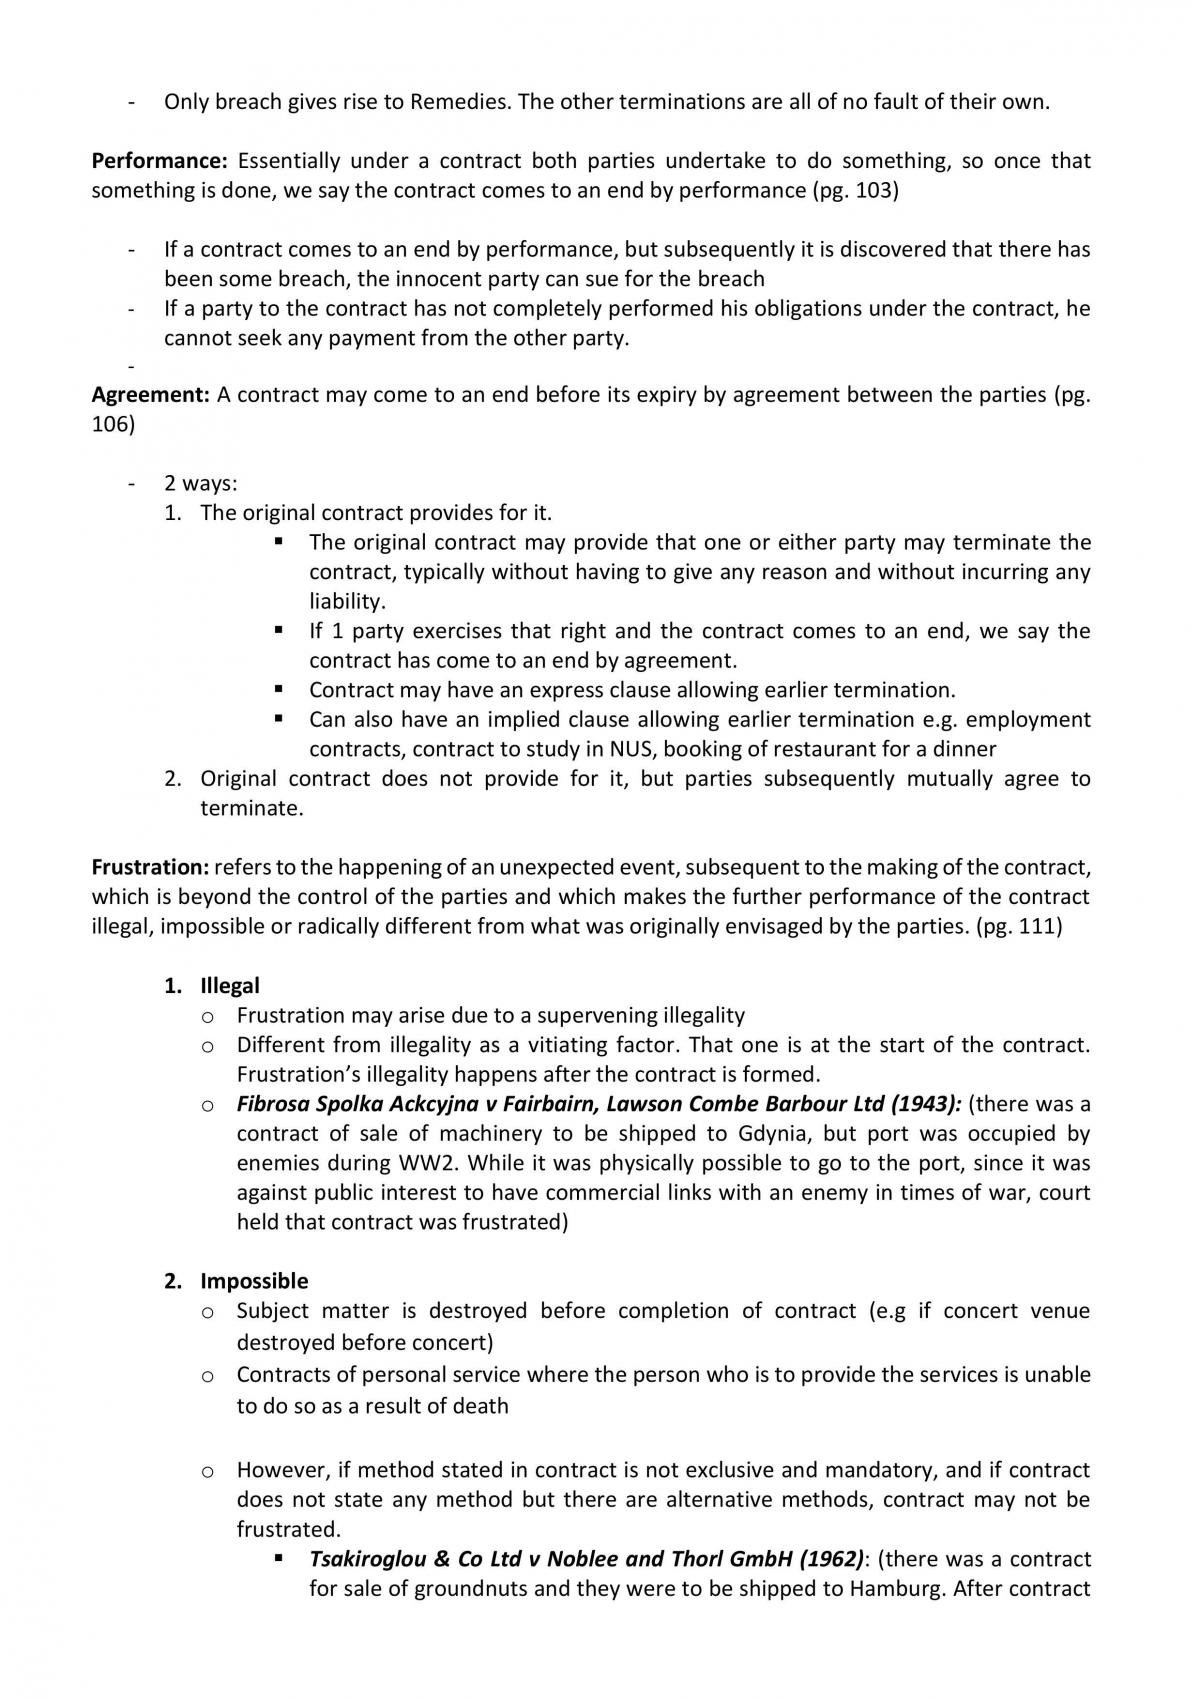 BSP1702 Complete Finals Notes - Page 11